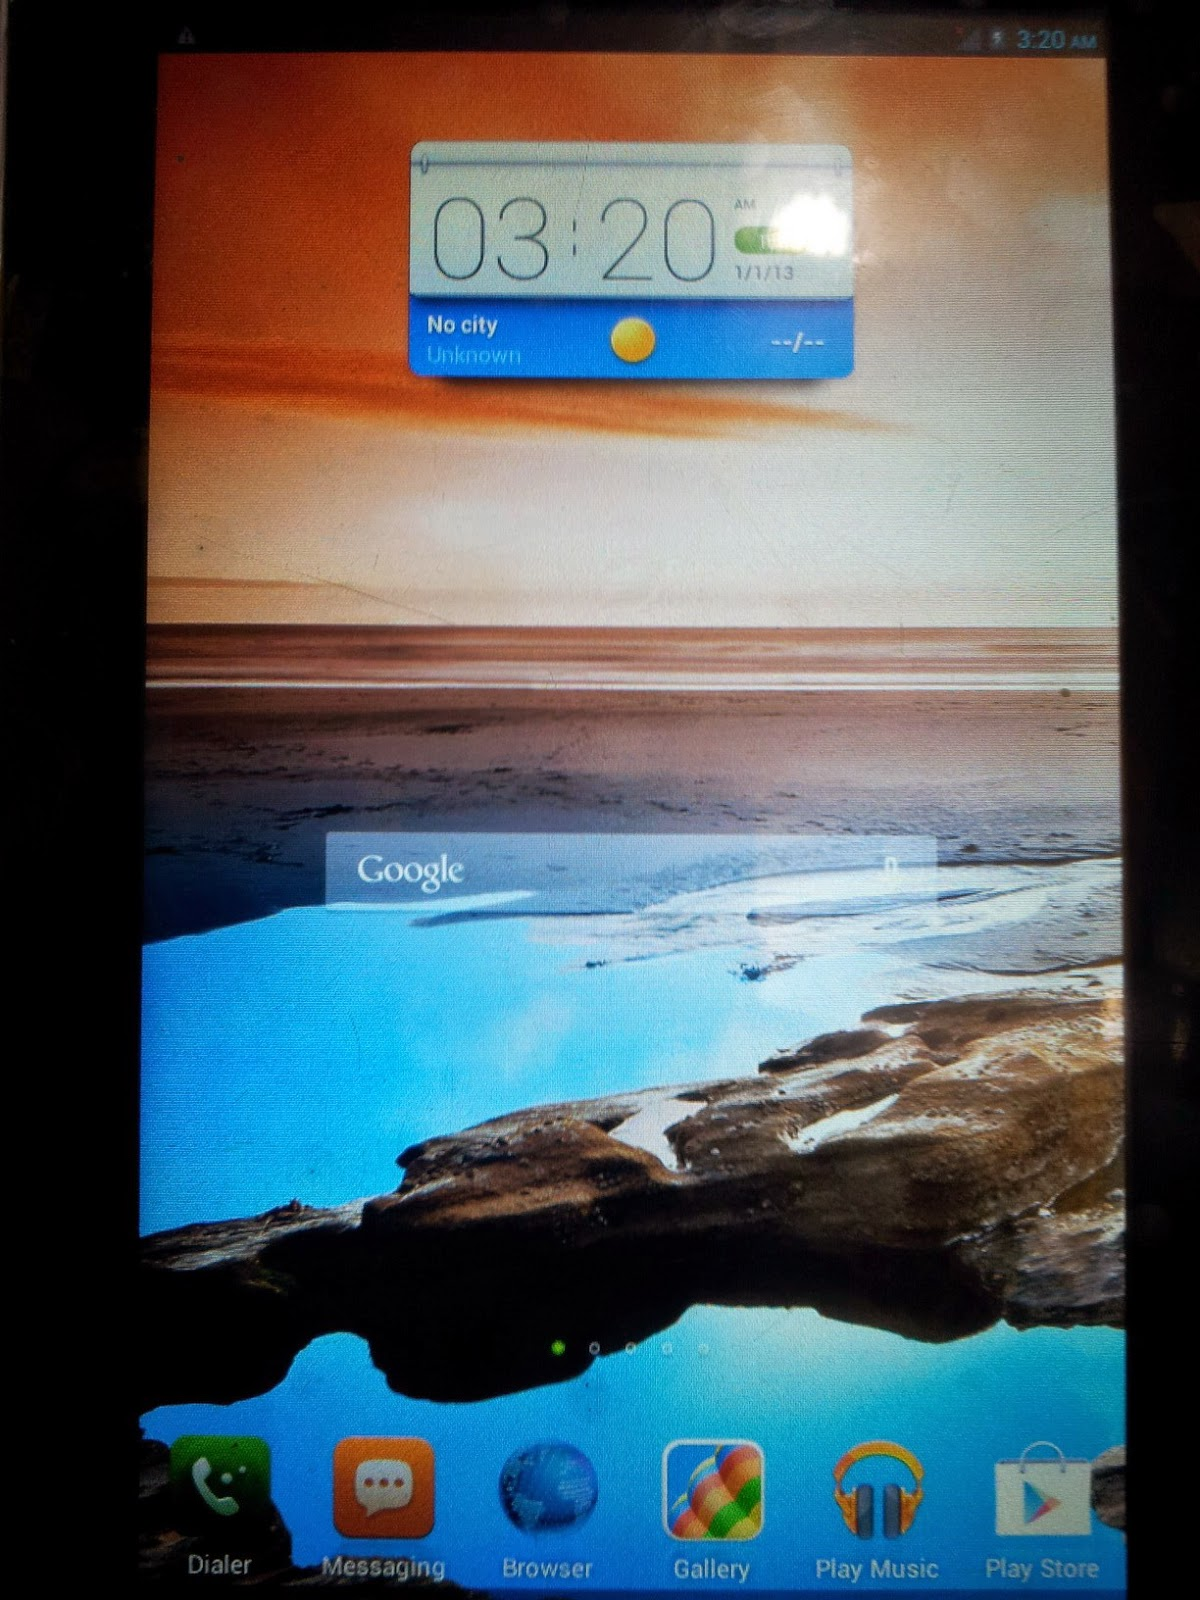 Update Lenovo A7-30 to Android Kitkat 4.4.2. Tested firmware and Tutorials.